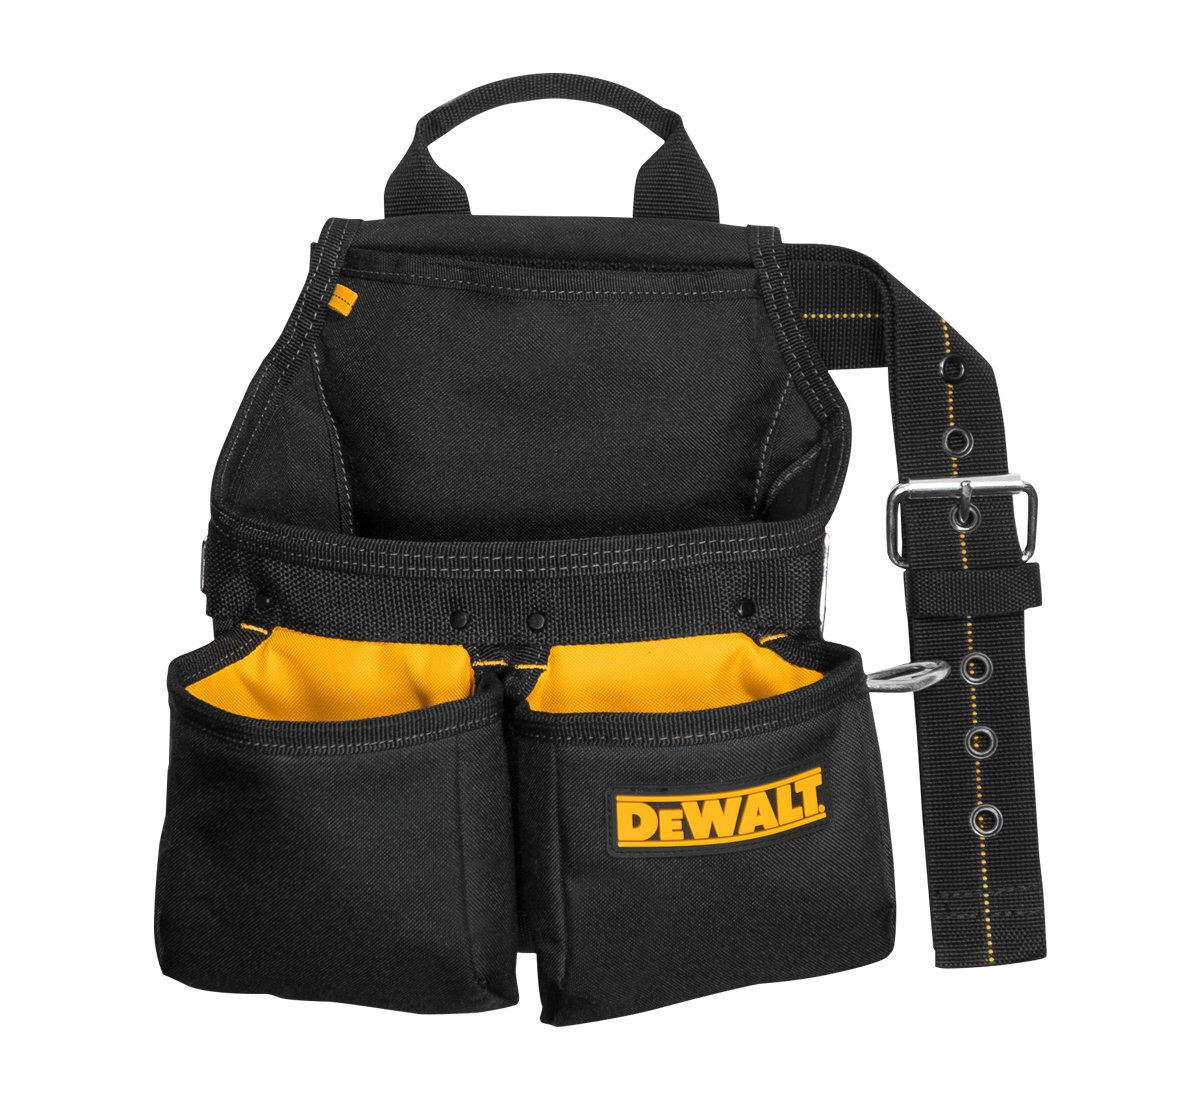 DEWALT DG5663 Tool Bag, 12 Pocket